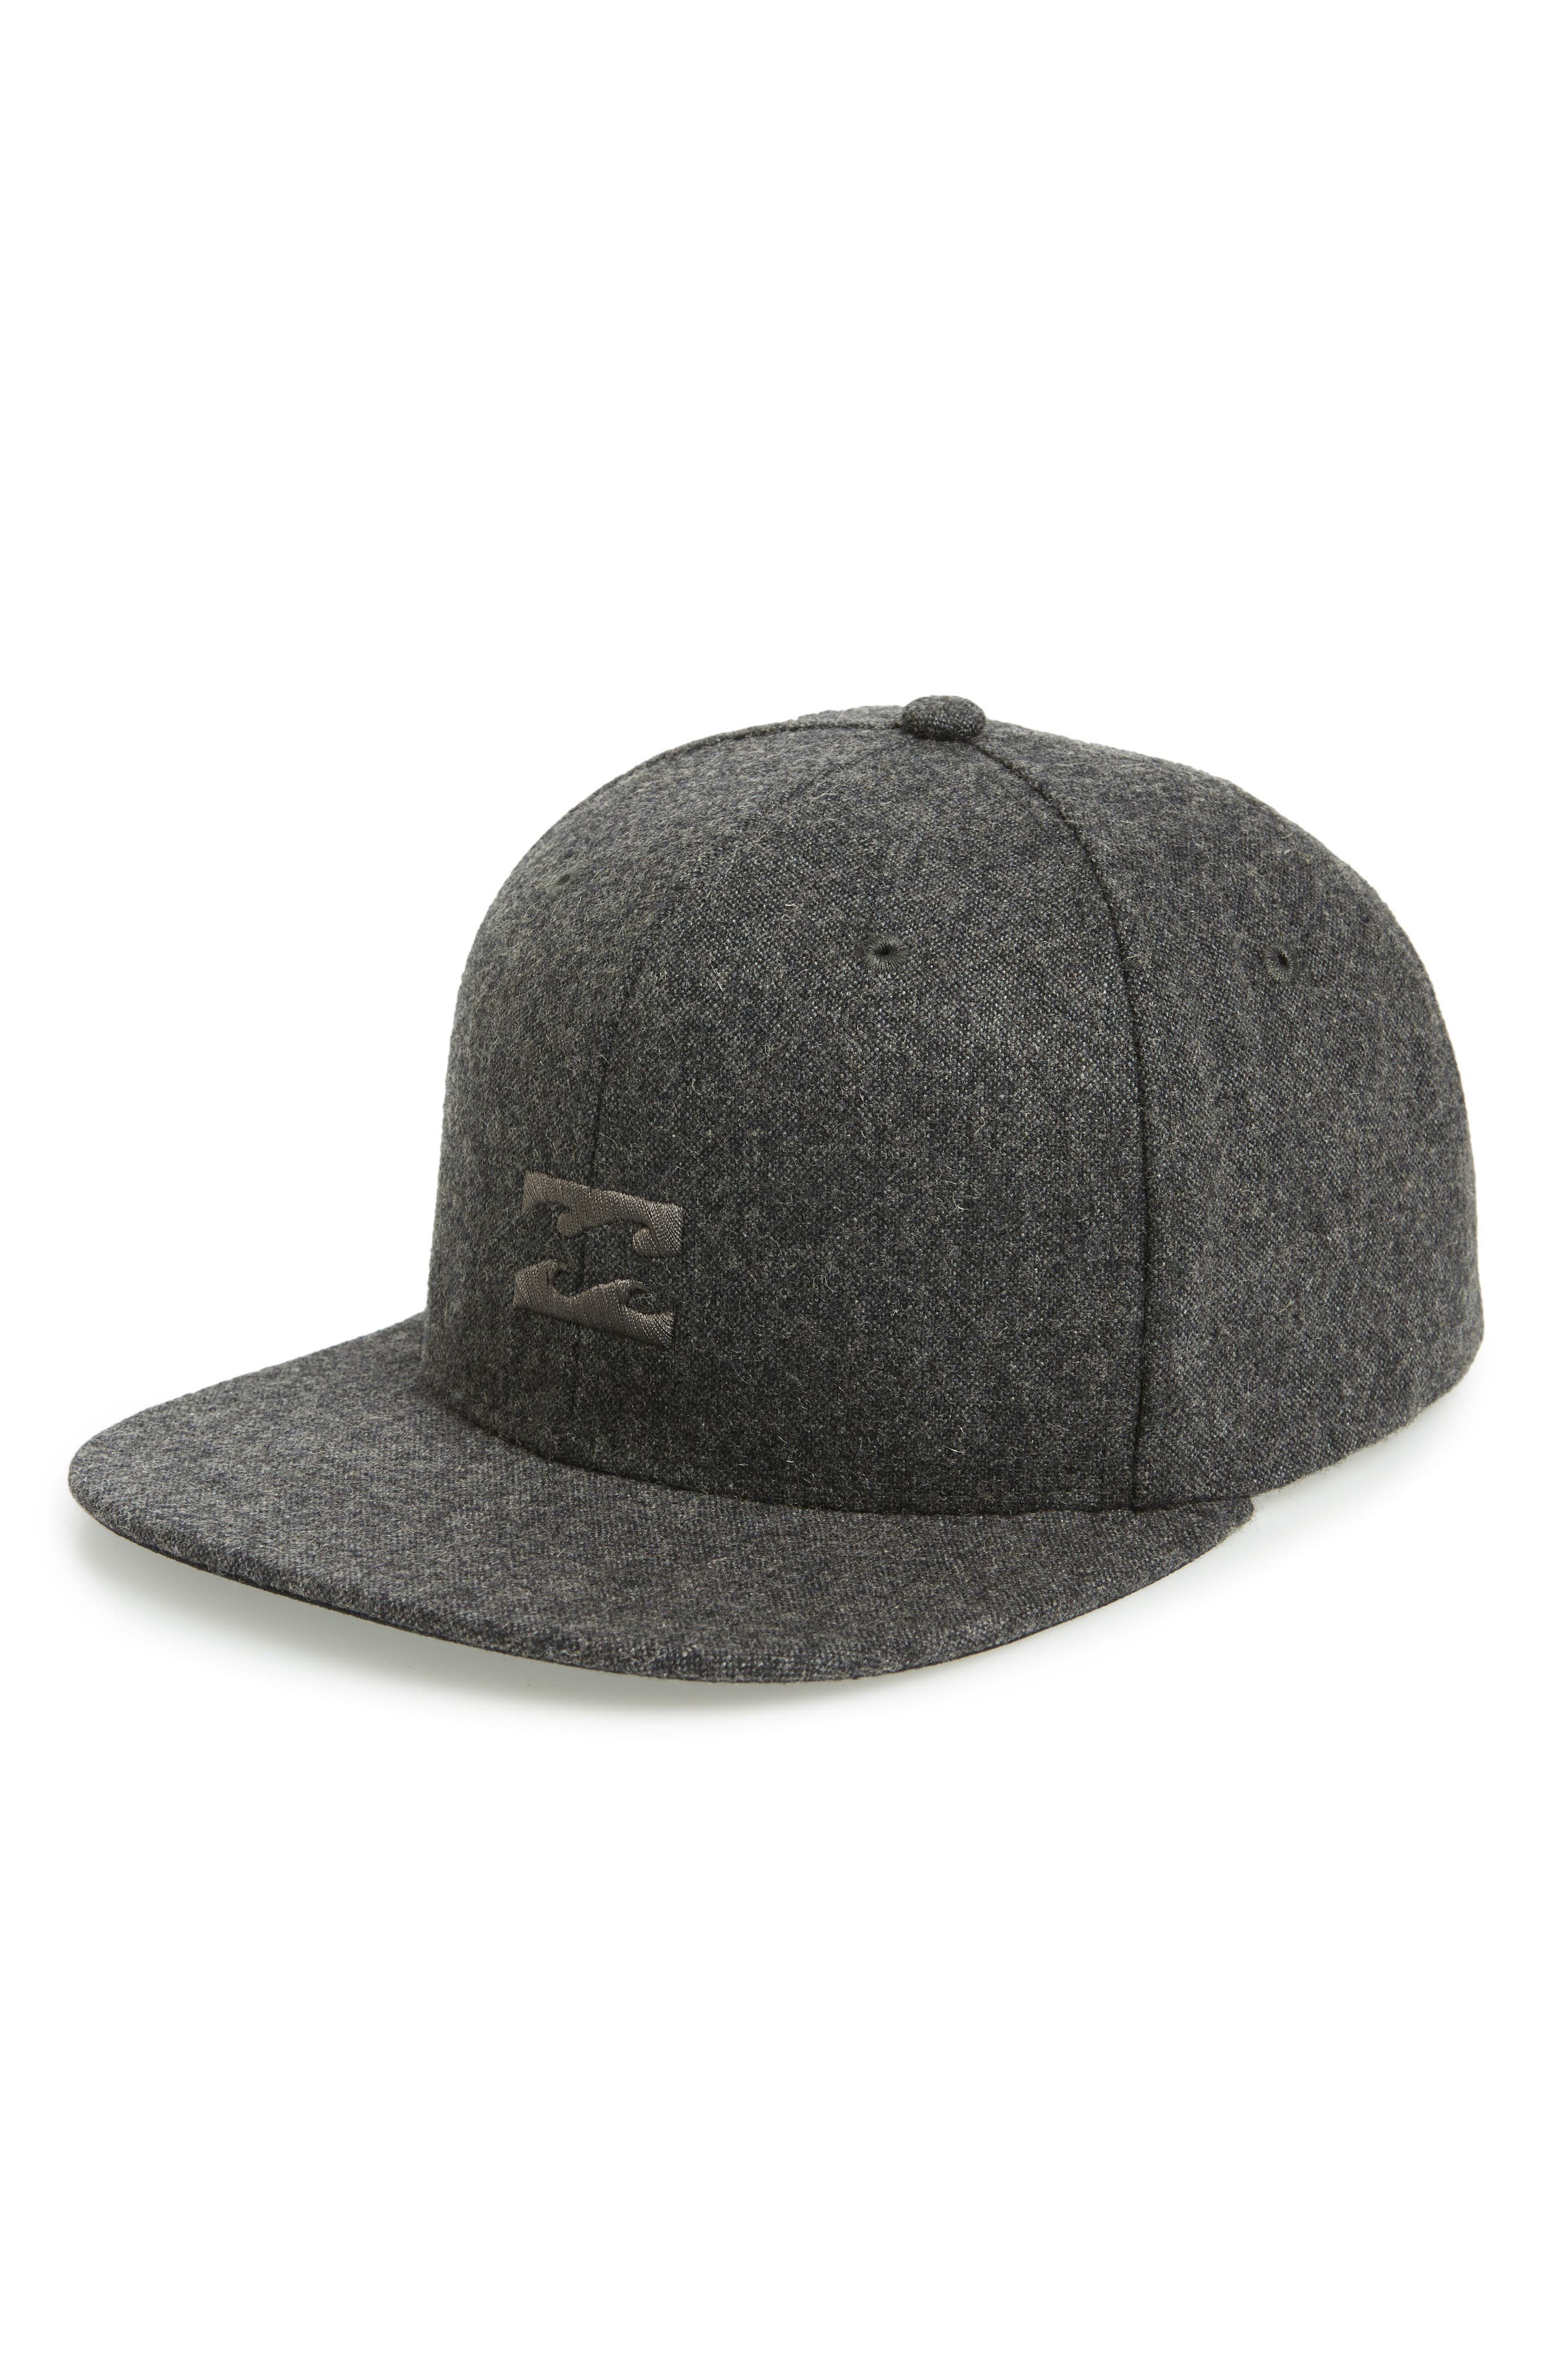 All Day Snapback Cap,                             Main thumbnail 1, color,                             BLACK HEATHER